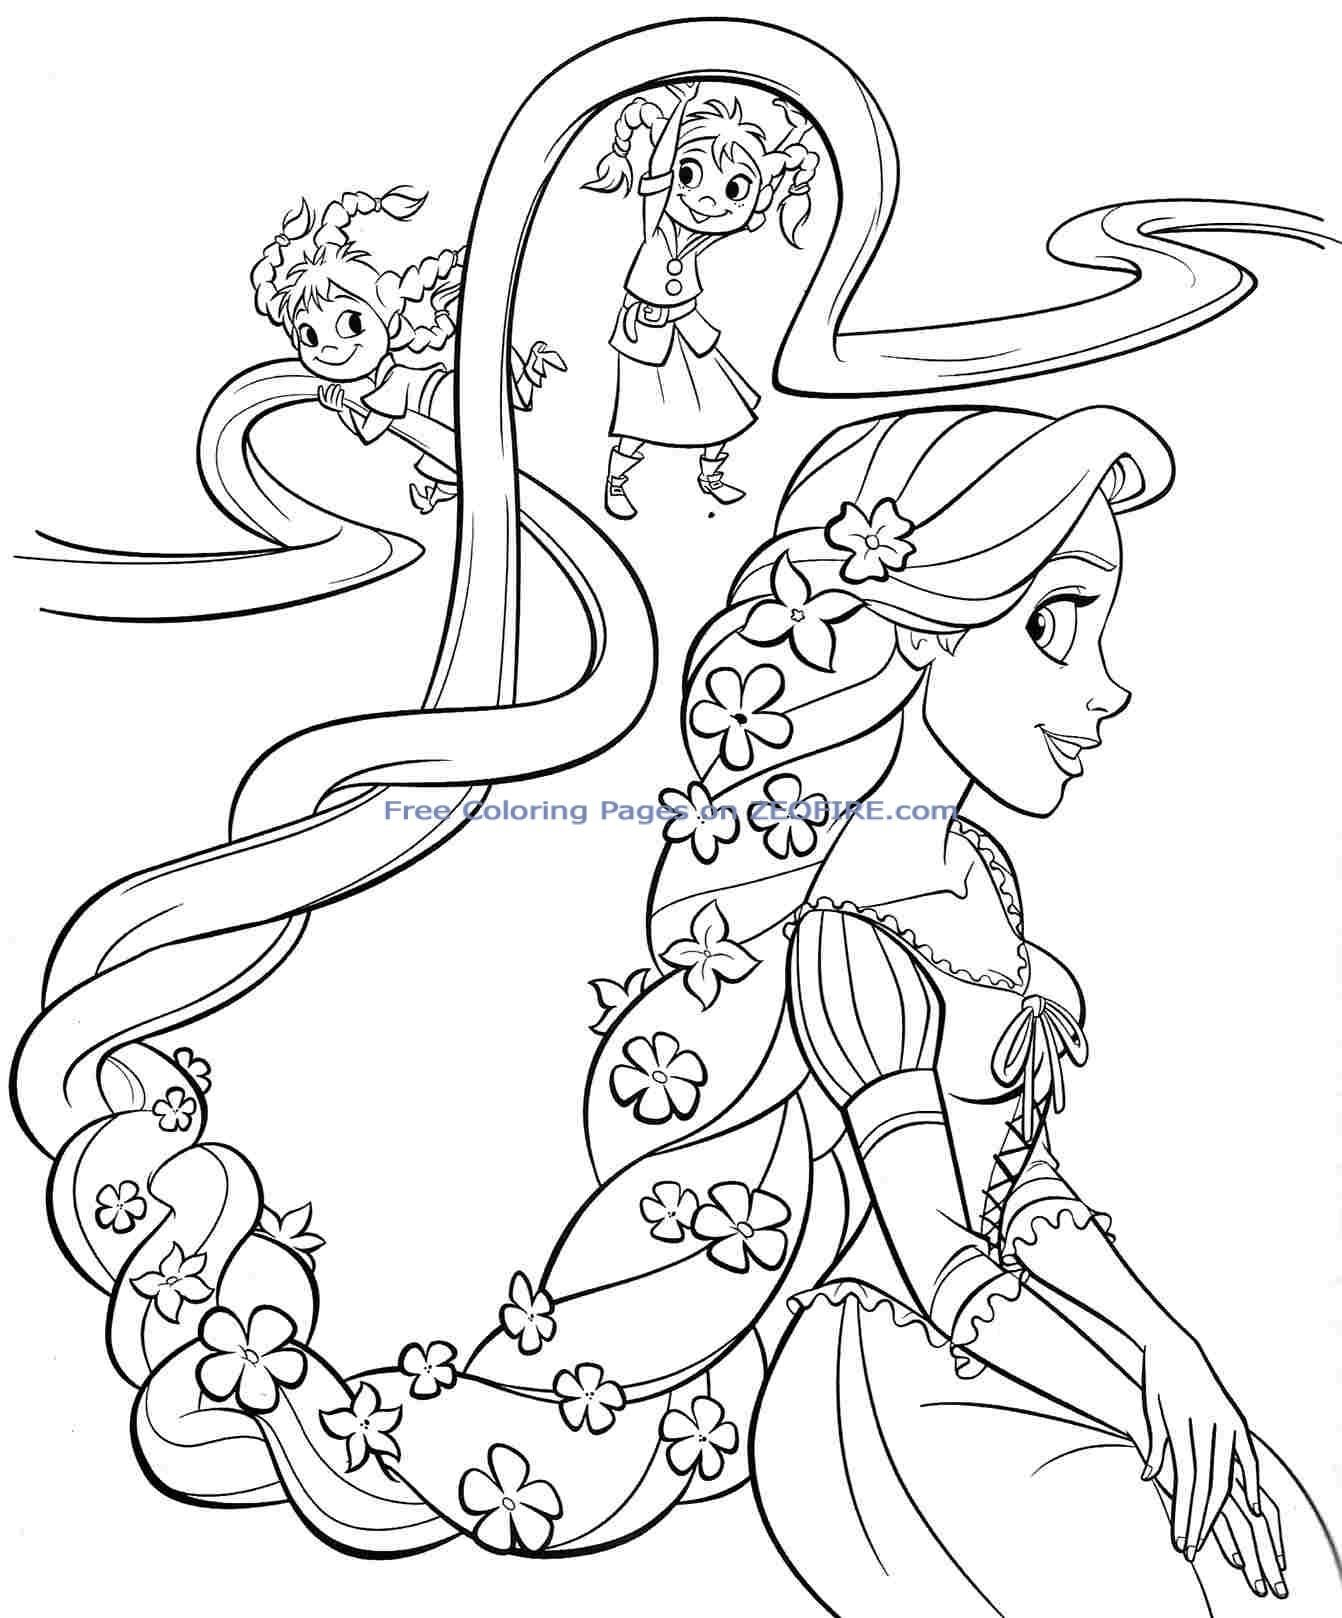 Amazing Princess Coloring Pages Printables 88 | Coloring pages for ...